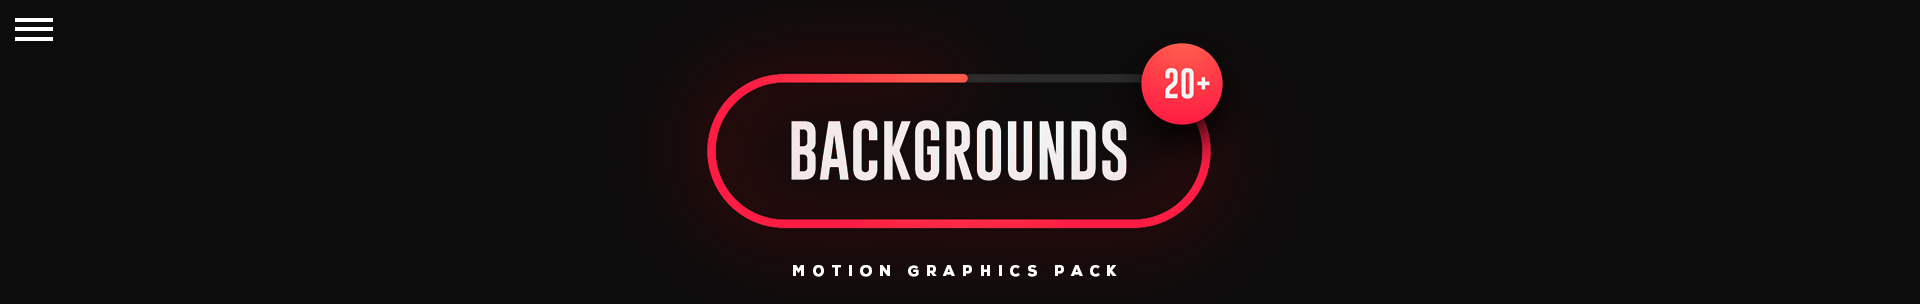 Motion Graphics Pack V2 - 16